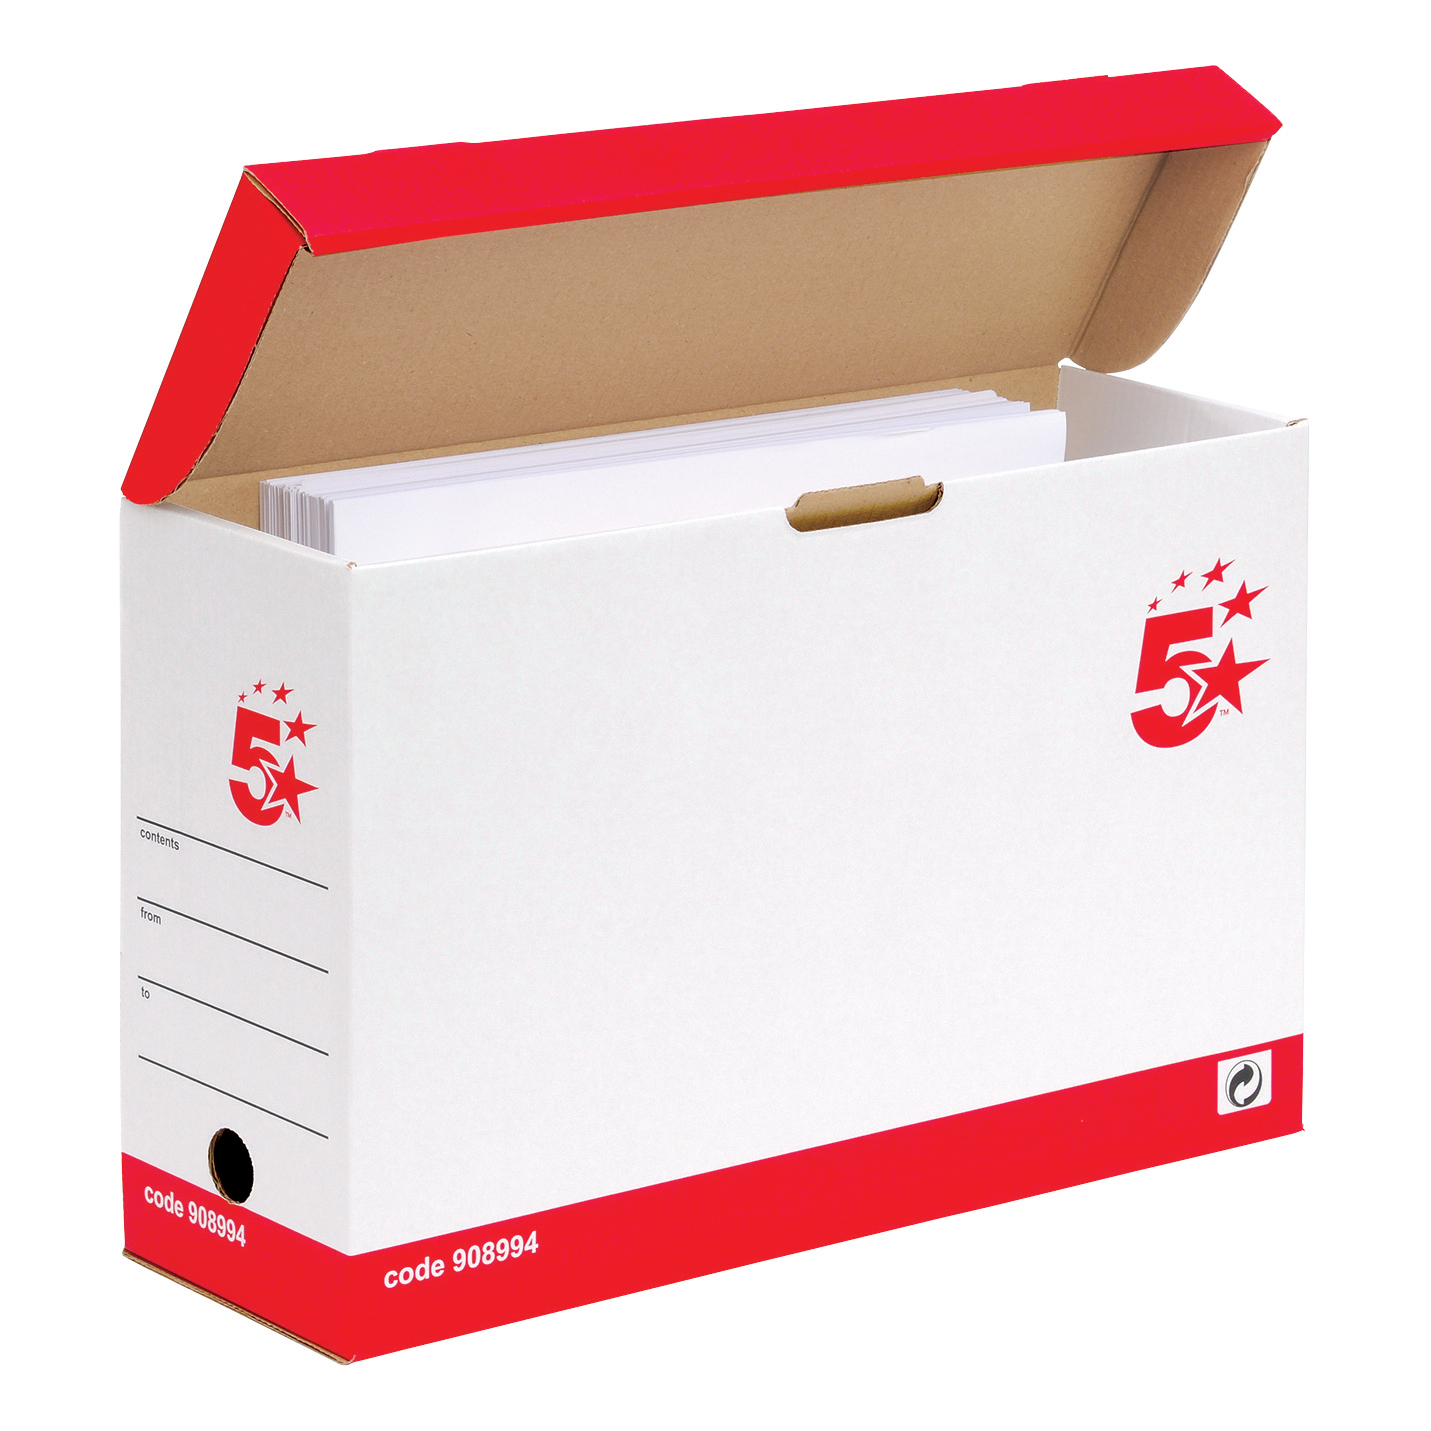 5 Star Office Transfer Case Hinged Lid Foolscap Red and White Pack 20